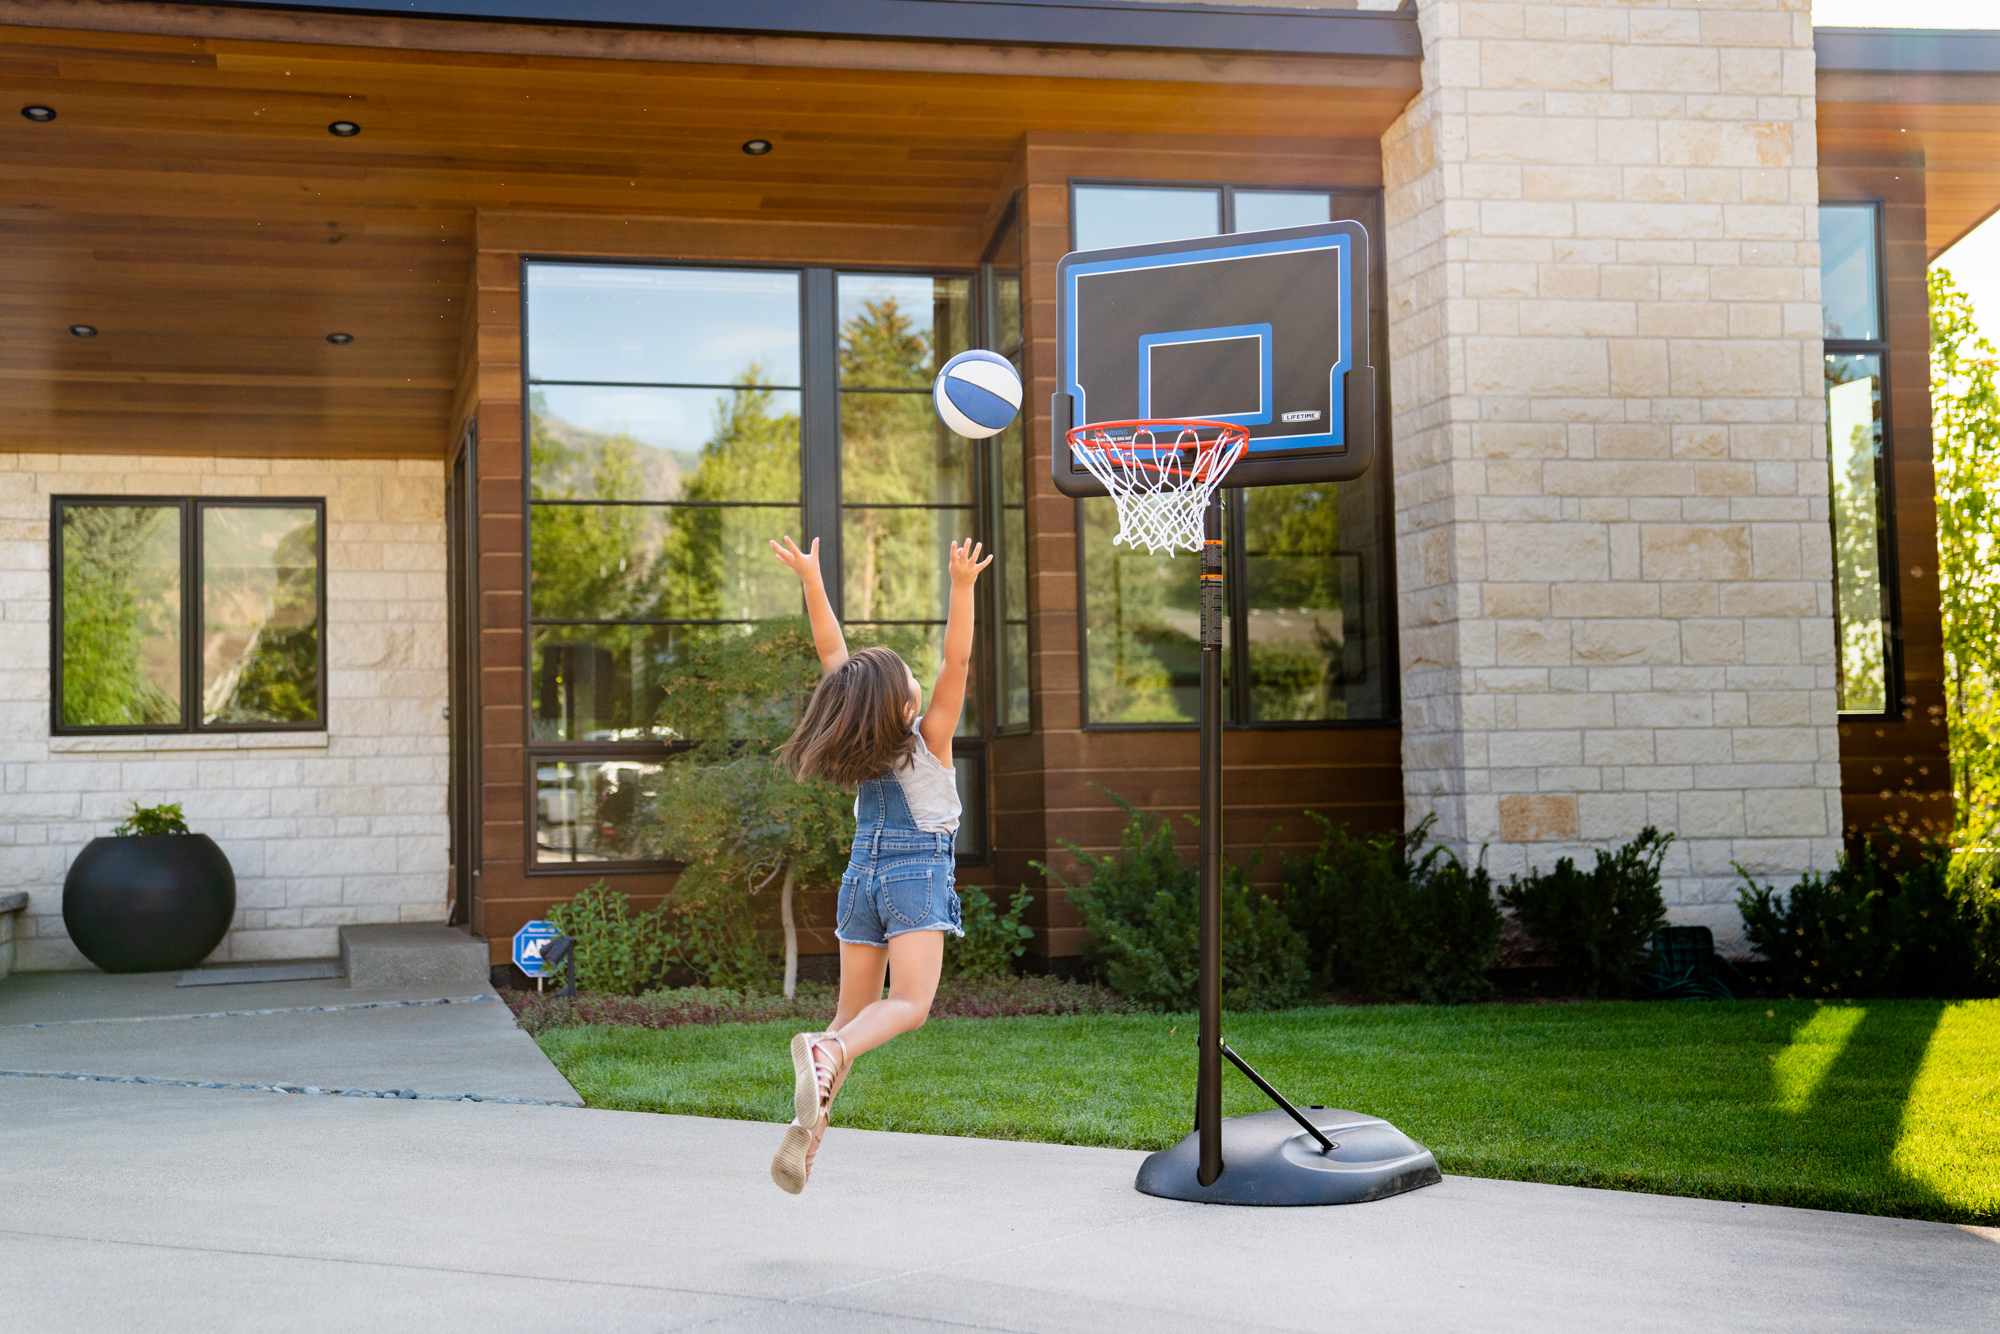 Girl Playing on Lifetime Basketball Hoop